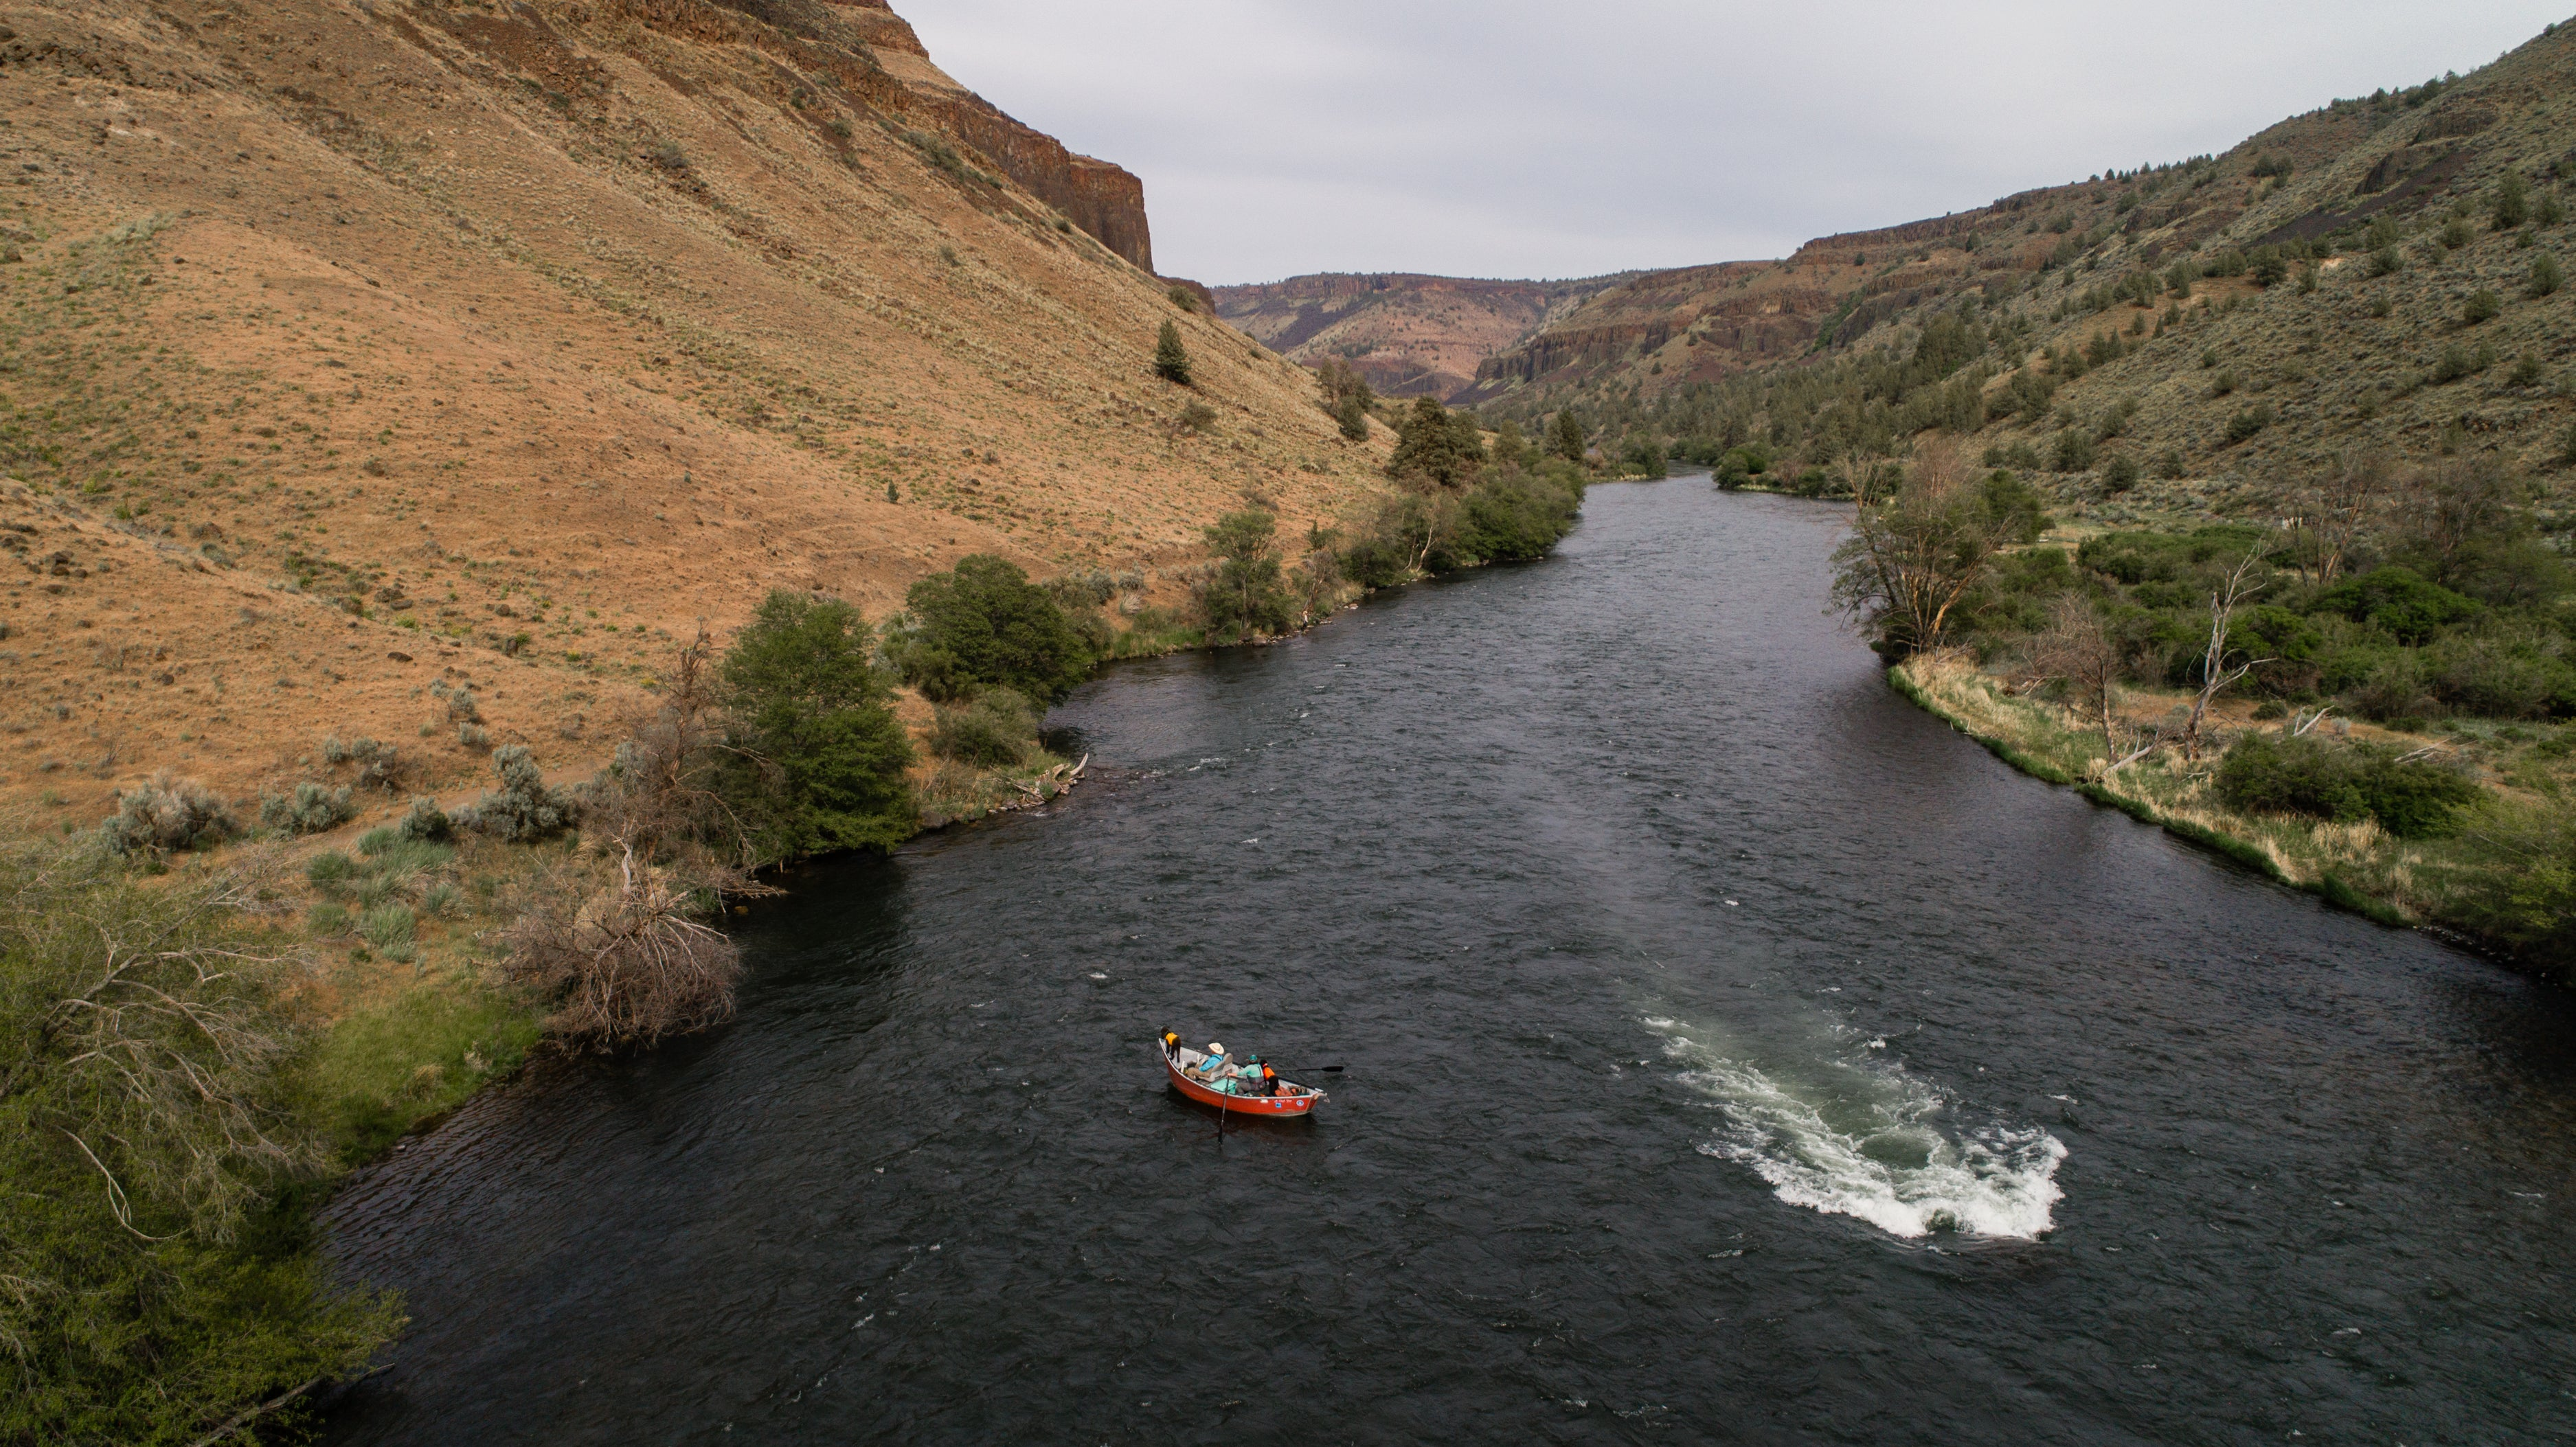 Fishing boat in the canyon of the deschutes.